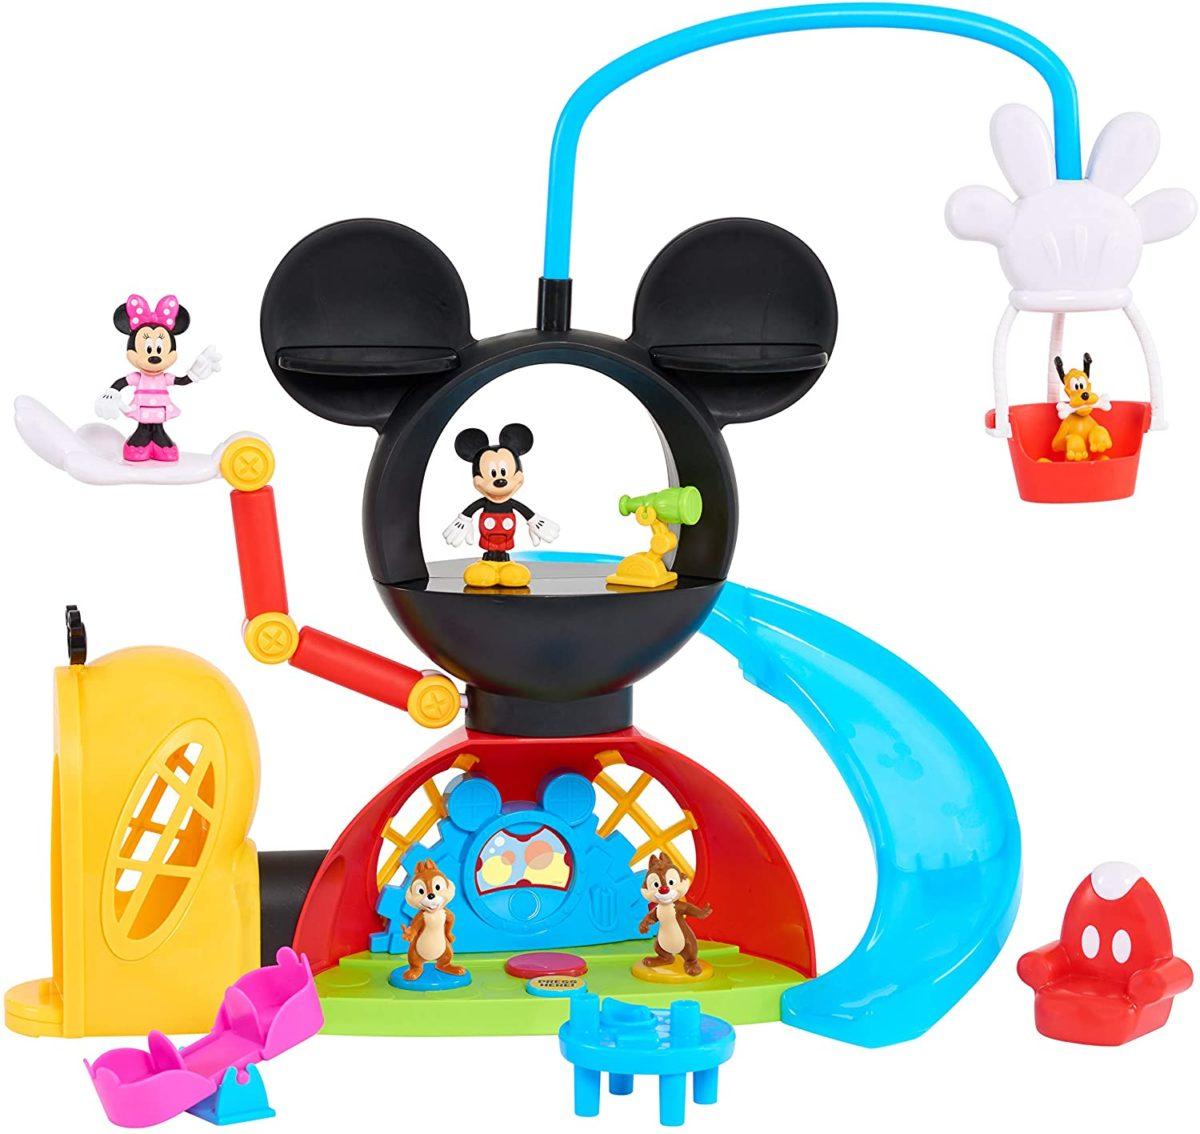 toys for toddlers: here are 35 gifts for every toddler in your life